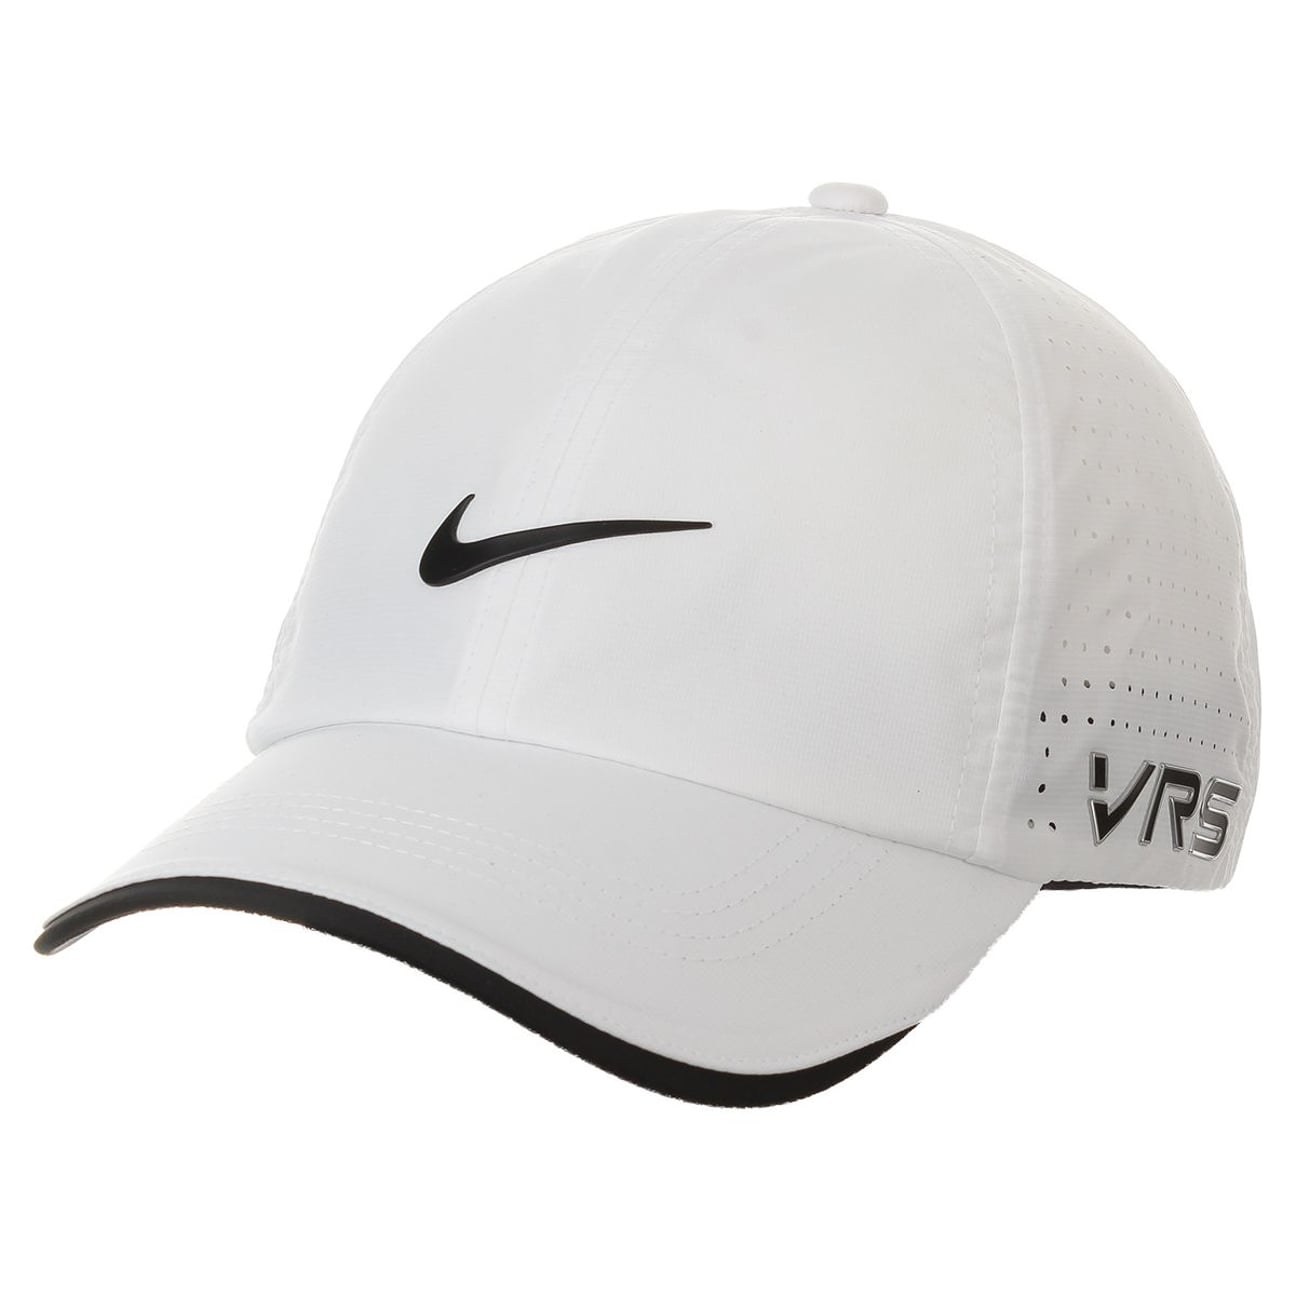 ... New Tour Perforated Golf Cap by Nike - bianco 1 ... b4758c421351